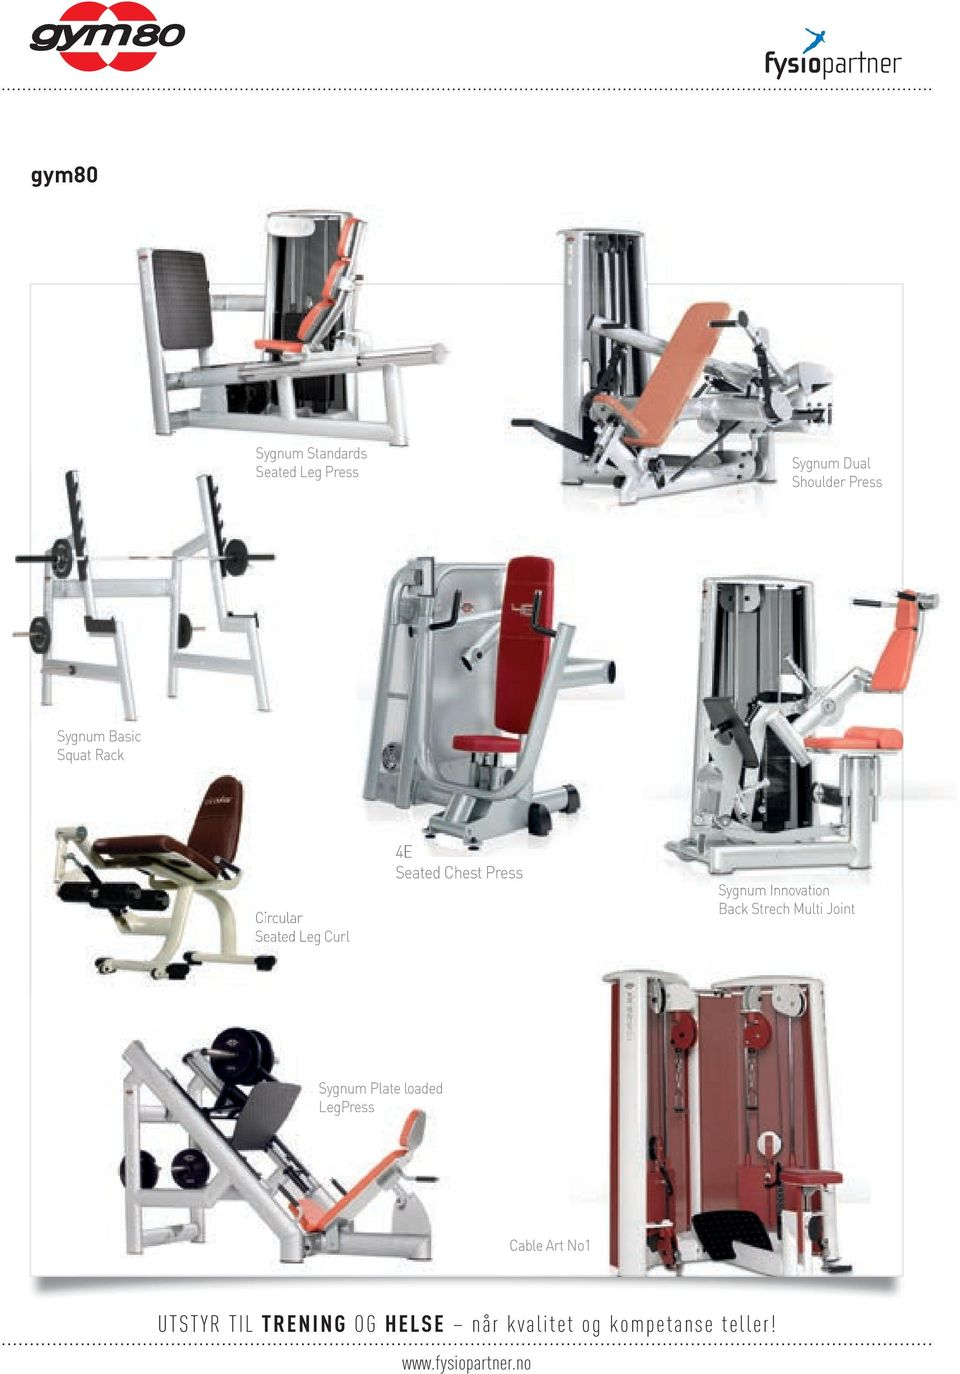 Leg Curl 4E Seated Chest Press Sygnum Innovation Back